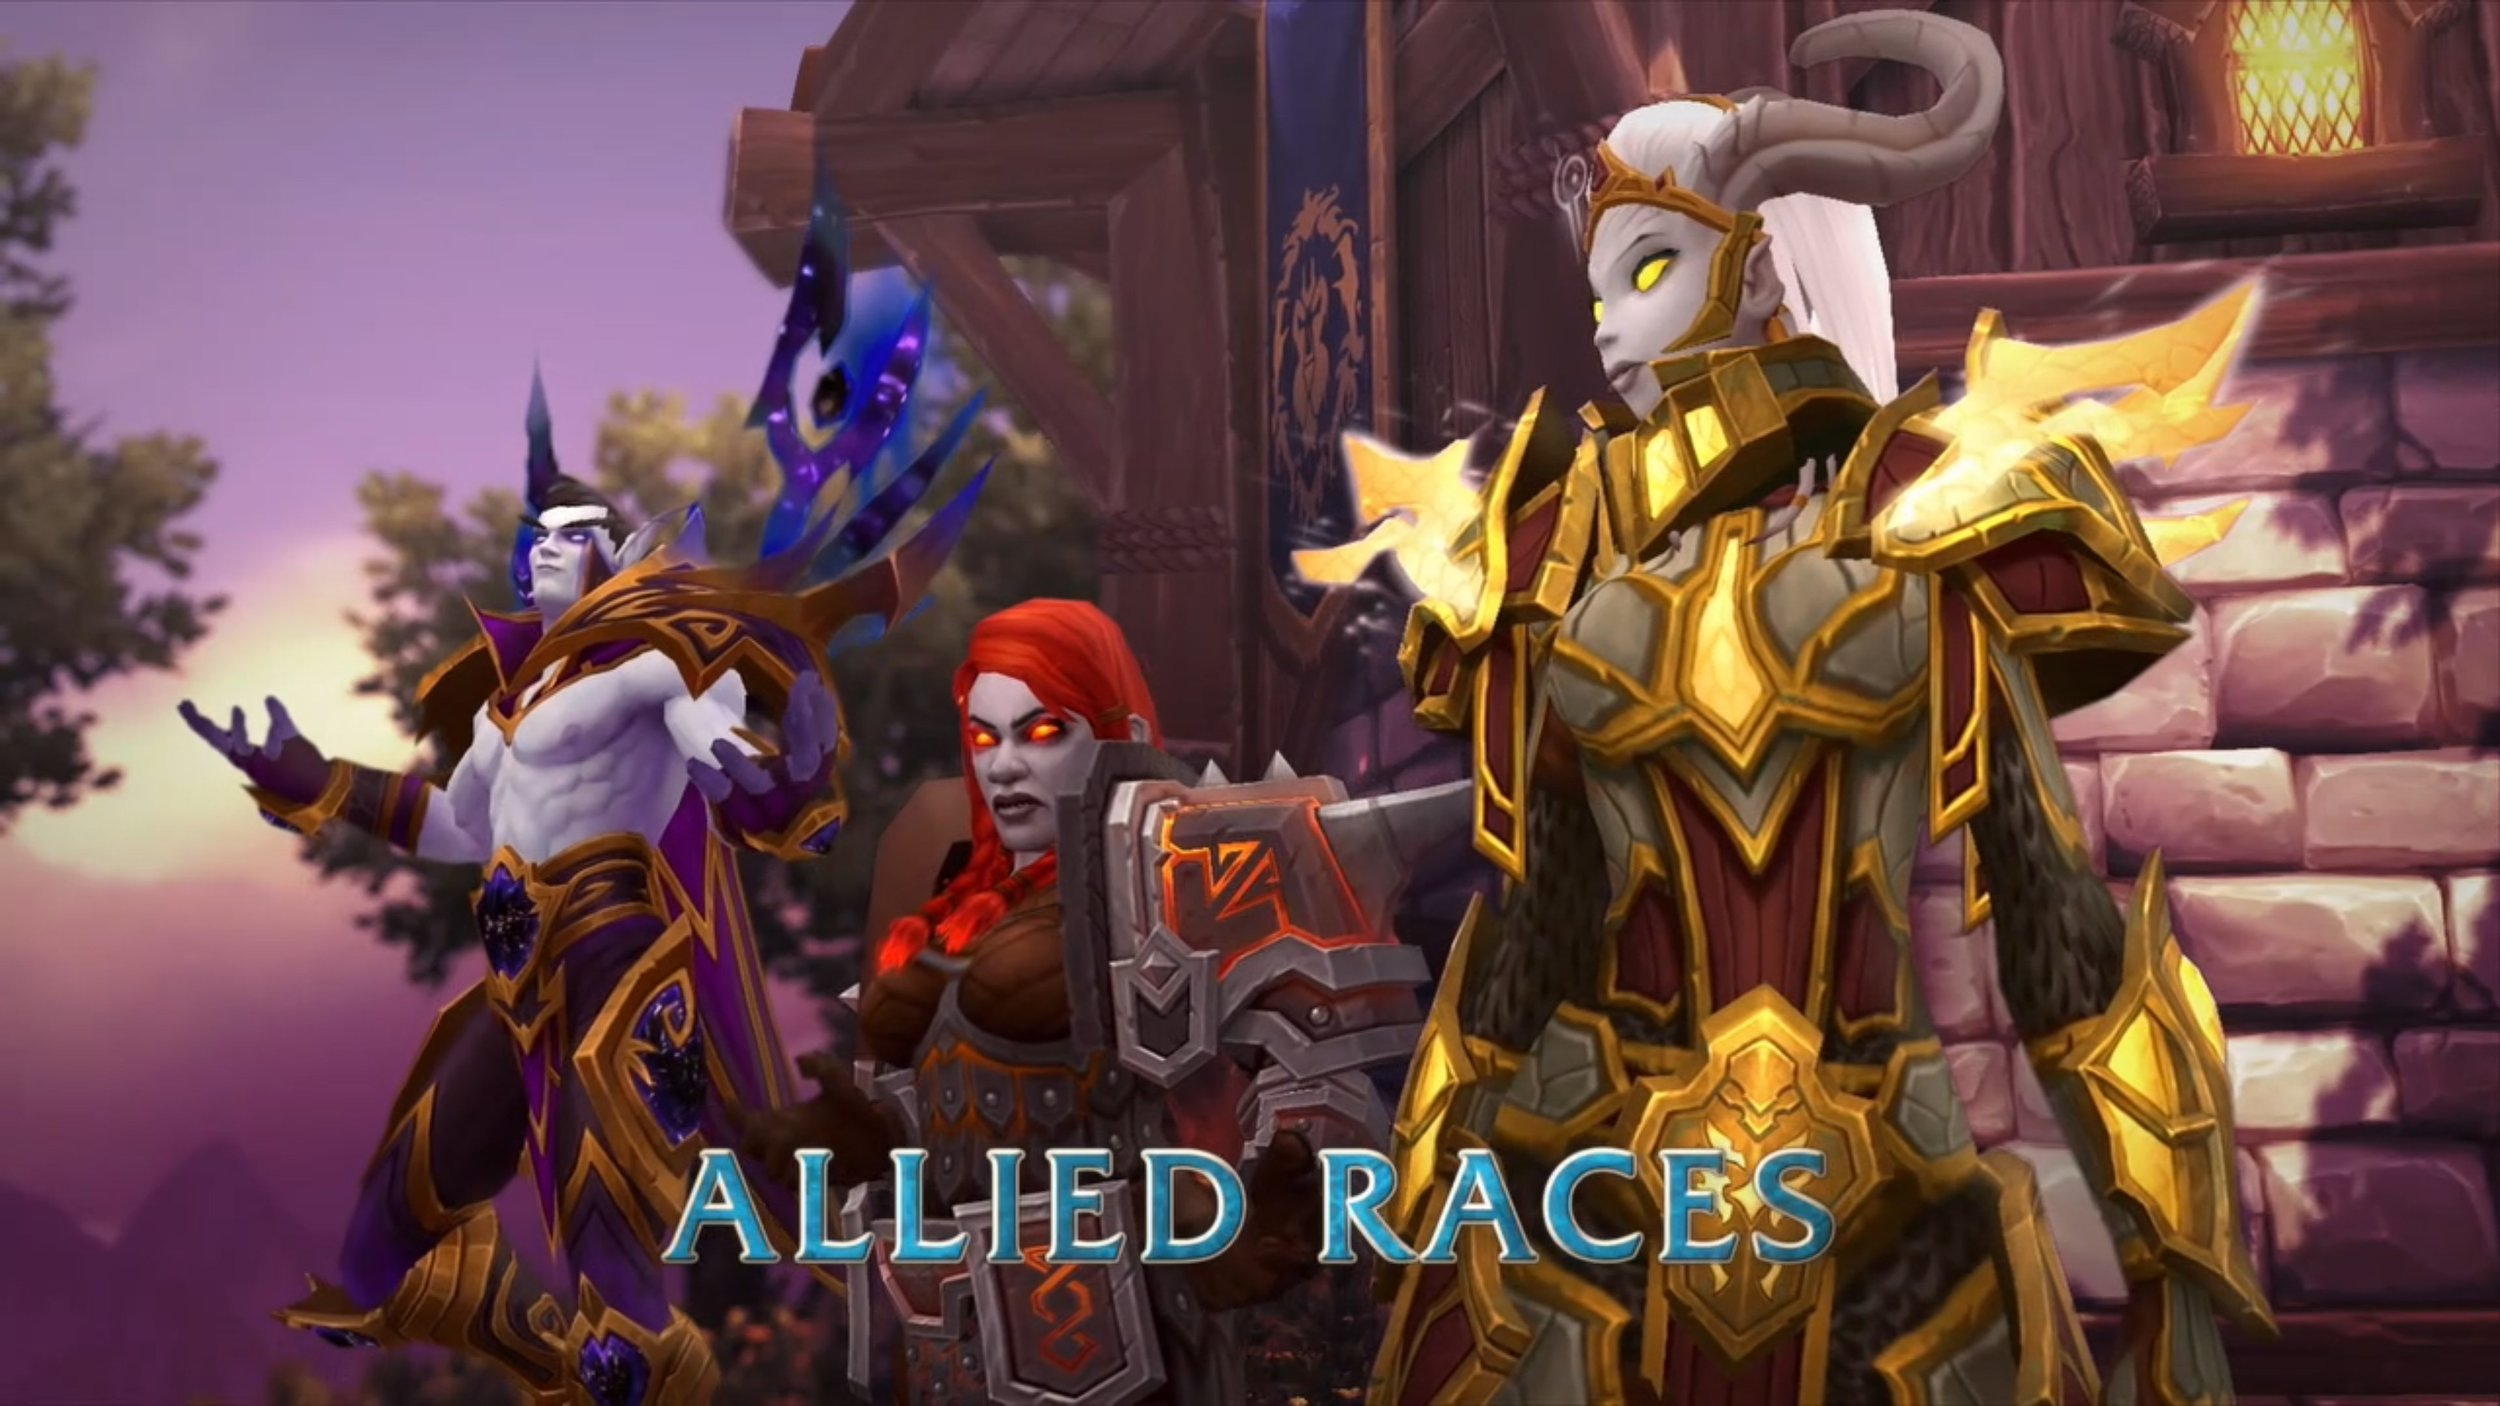 I will NOT play Alliance just so I can be a Void Elf gdi...